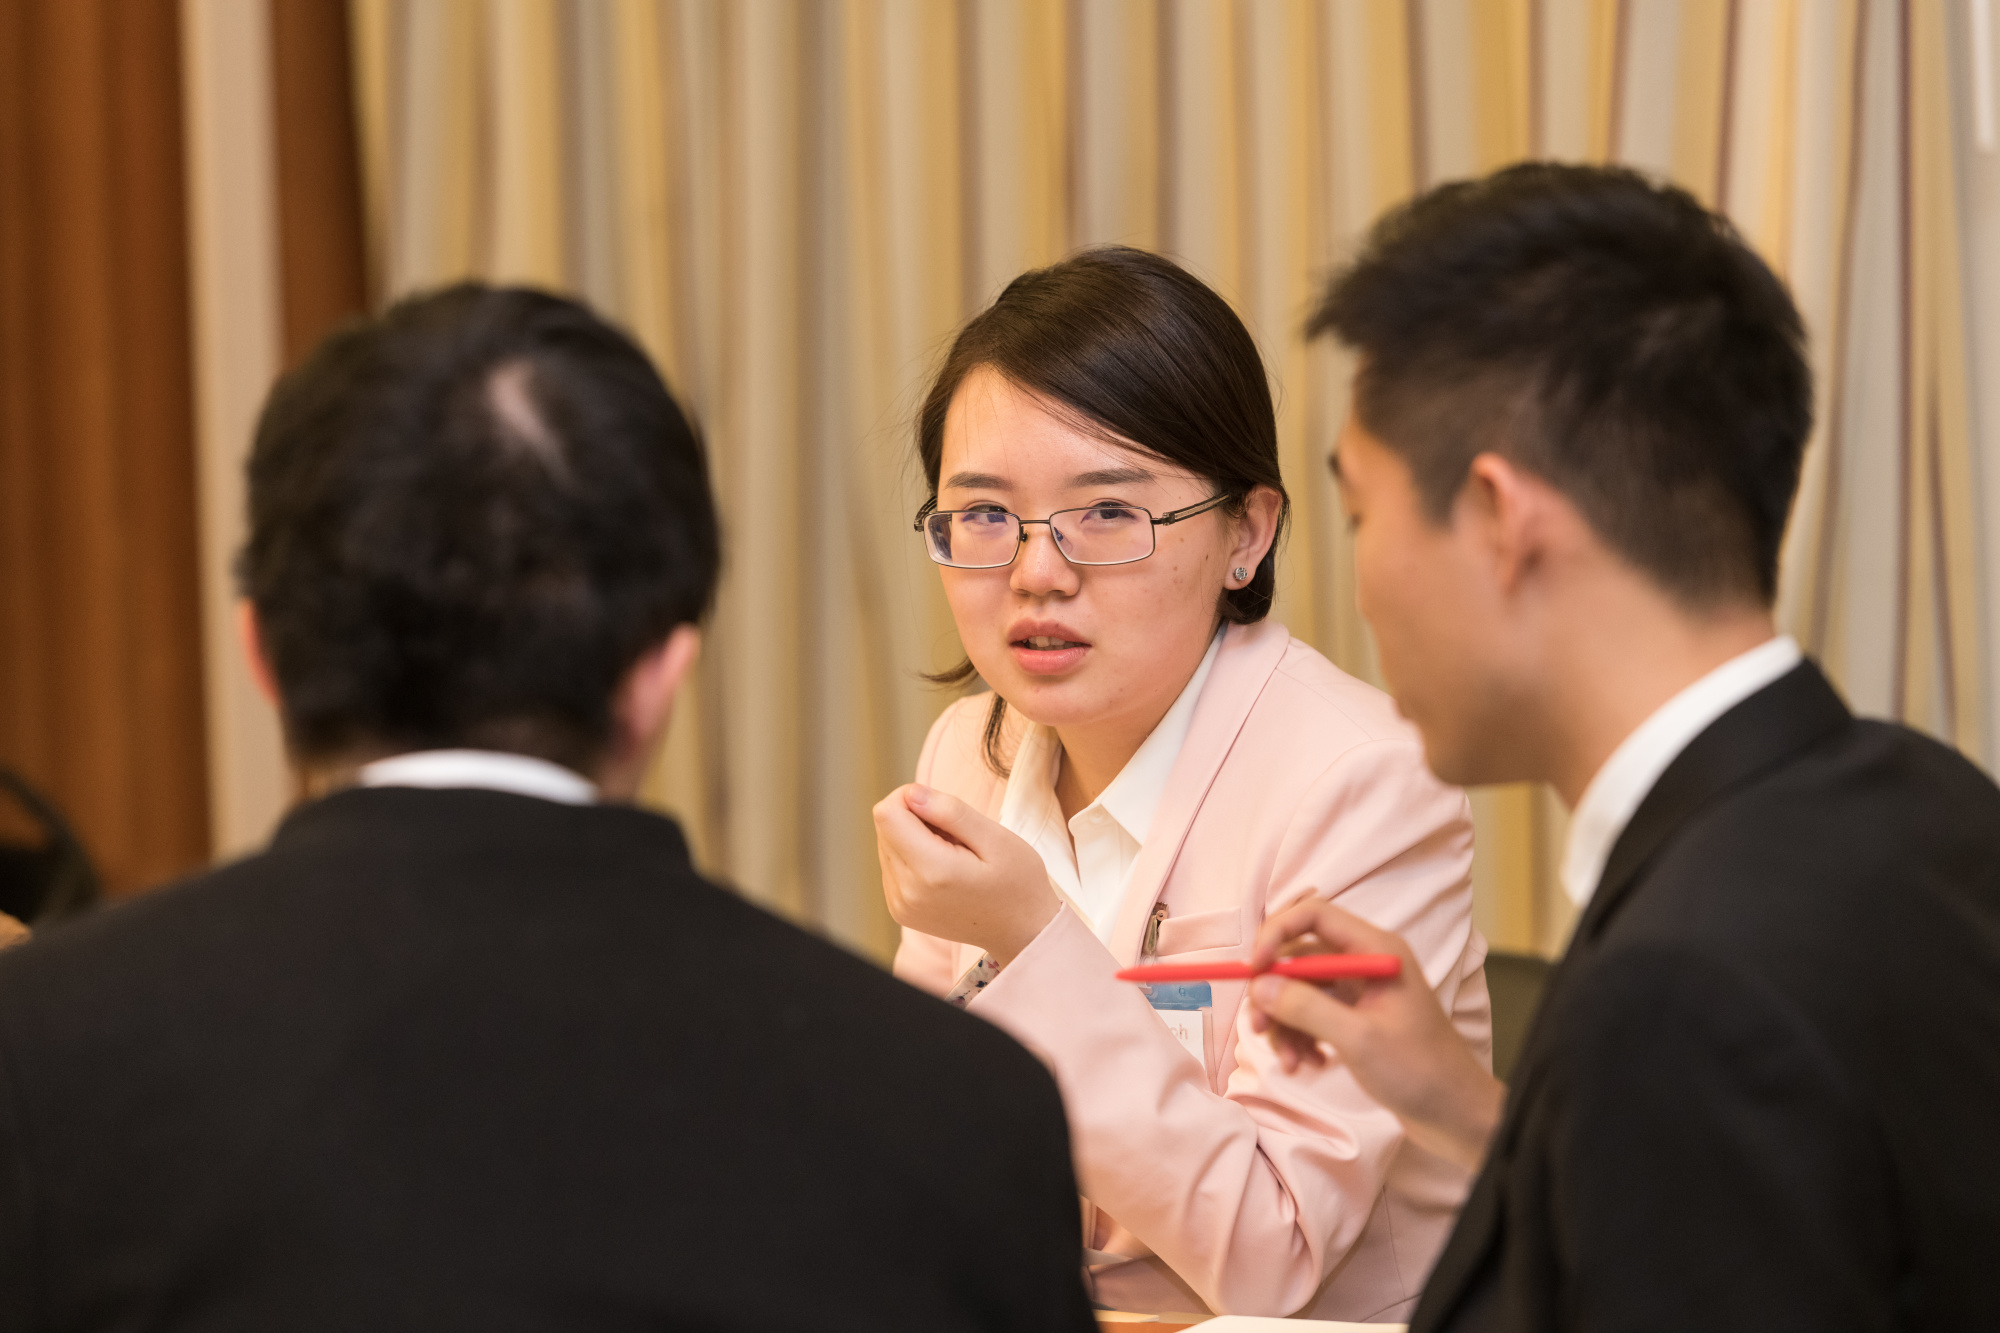 Peking University Students at AUC